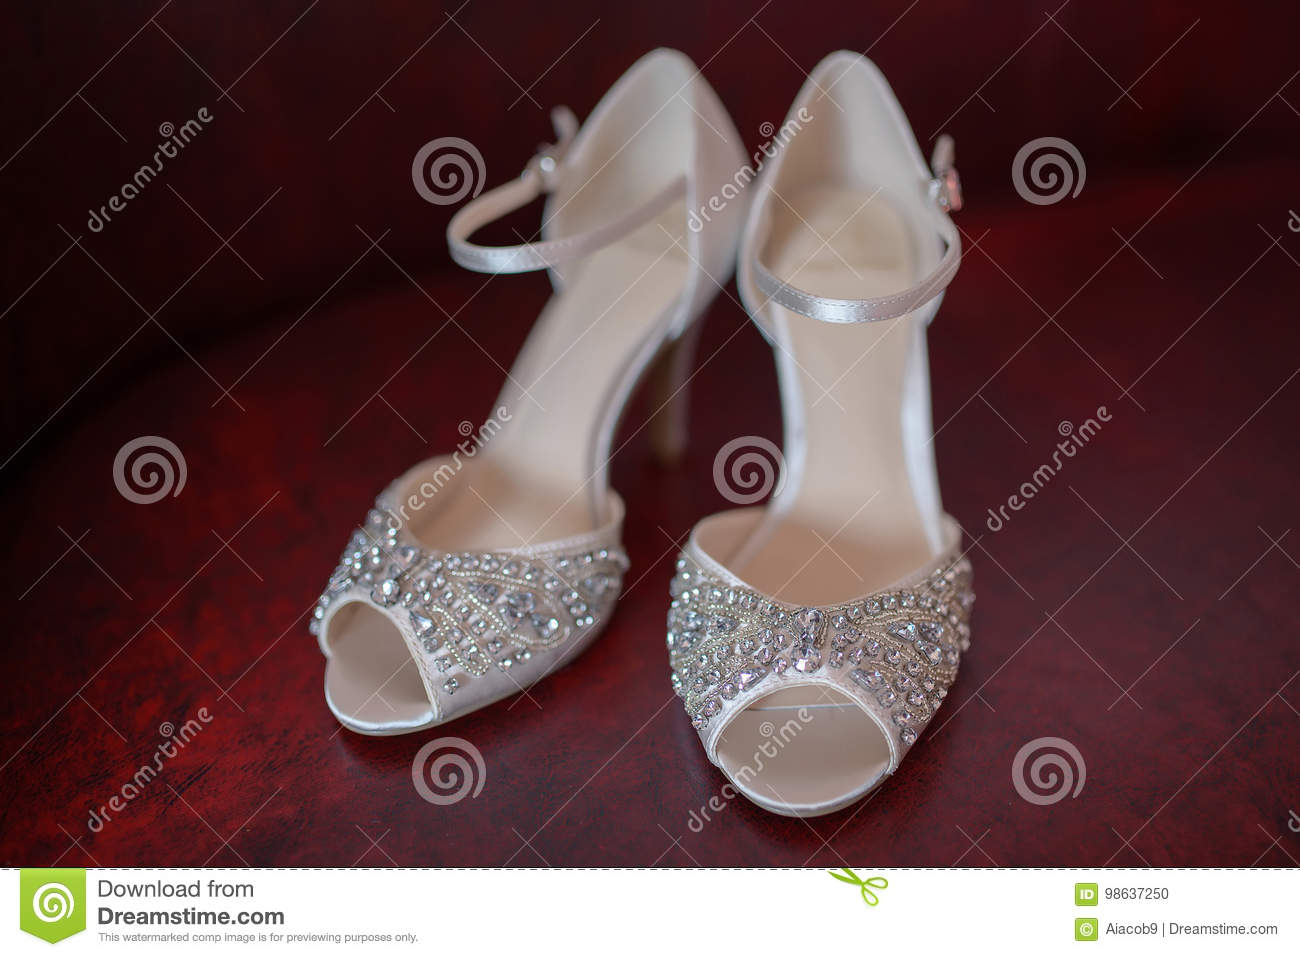 b2d870ed556 White Silk Bridal Peep Toe Shoes With Rhinestones And Delicate Beads ...